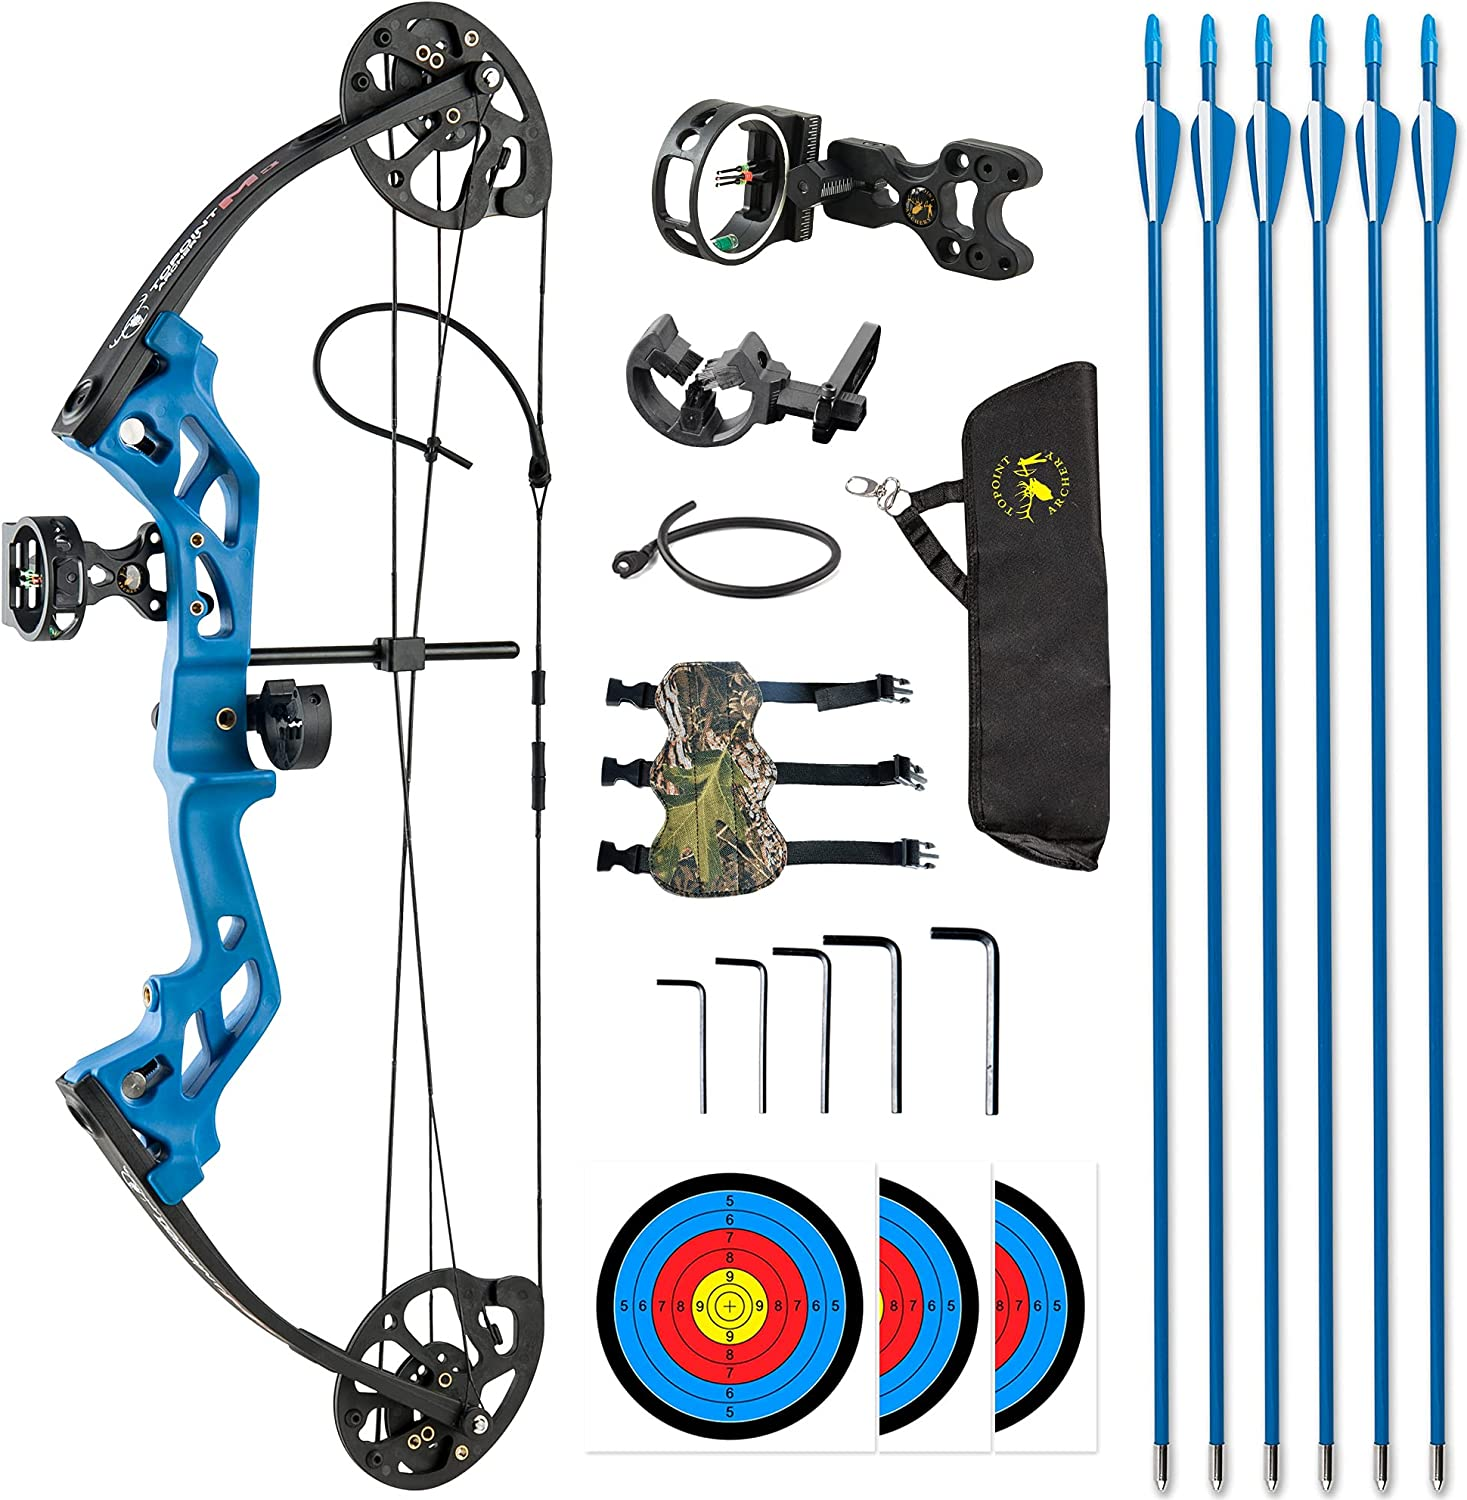 TOPOINT ARCHERY M3 Discount mail order Compound Bow Beginners JuniorKid Ranking TOP6 Package for